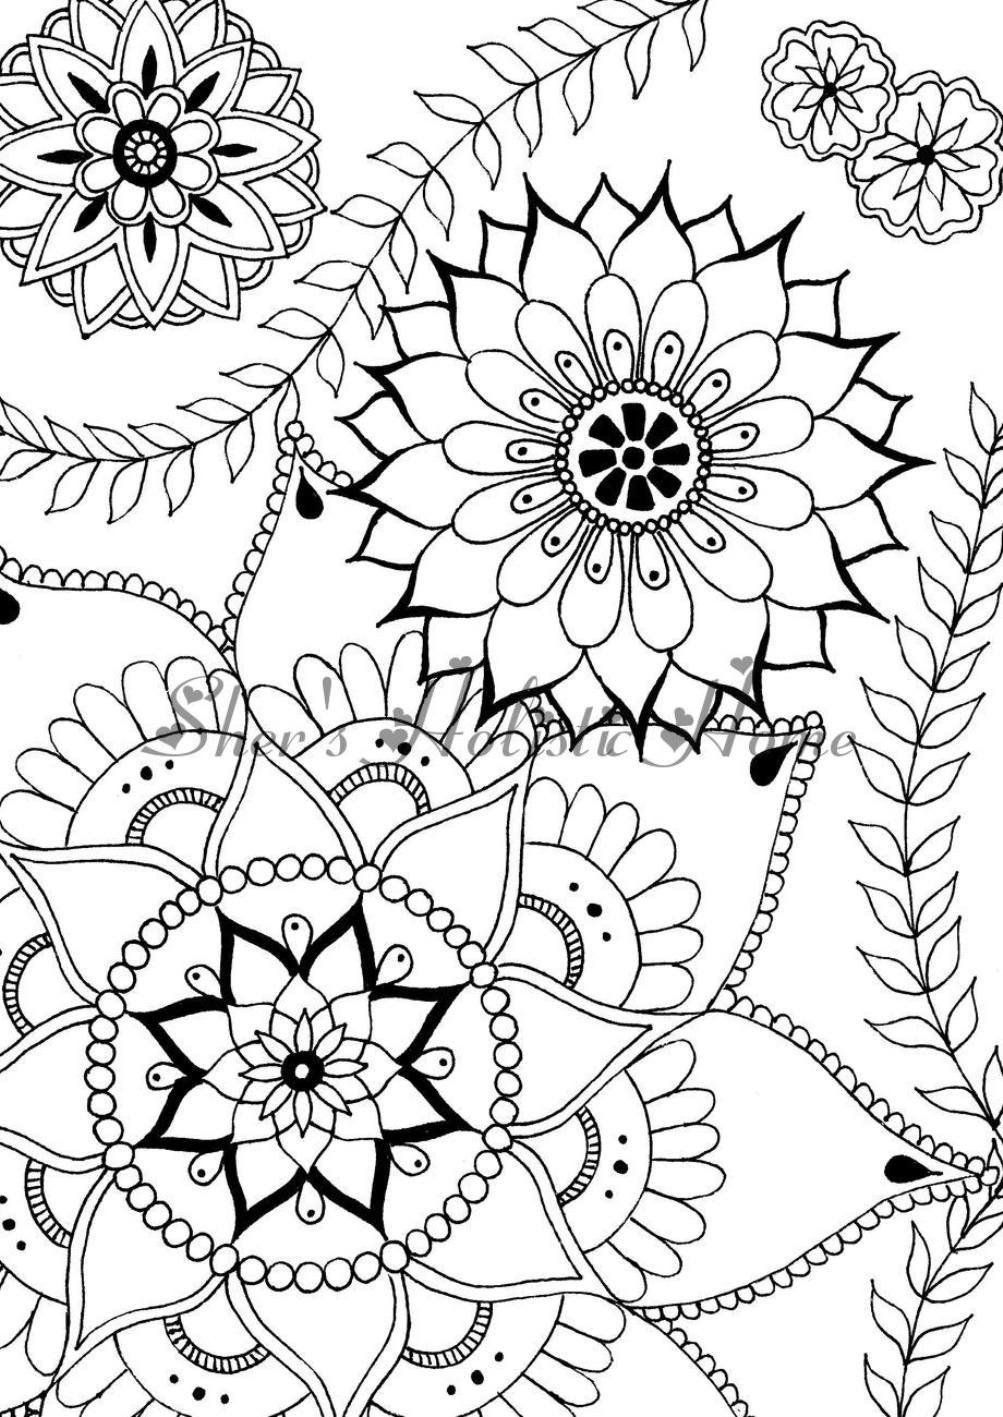 Mandala Coloring Pages Flowers Flower Coloring Page Mandala Coloring Page Flower Mandala In 2020 Mandala Coloring Pages Mandala Coloring Flower Coloring Pages